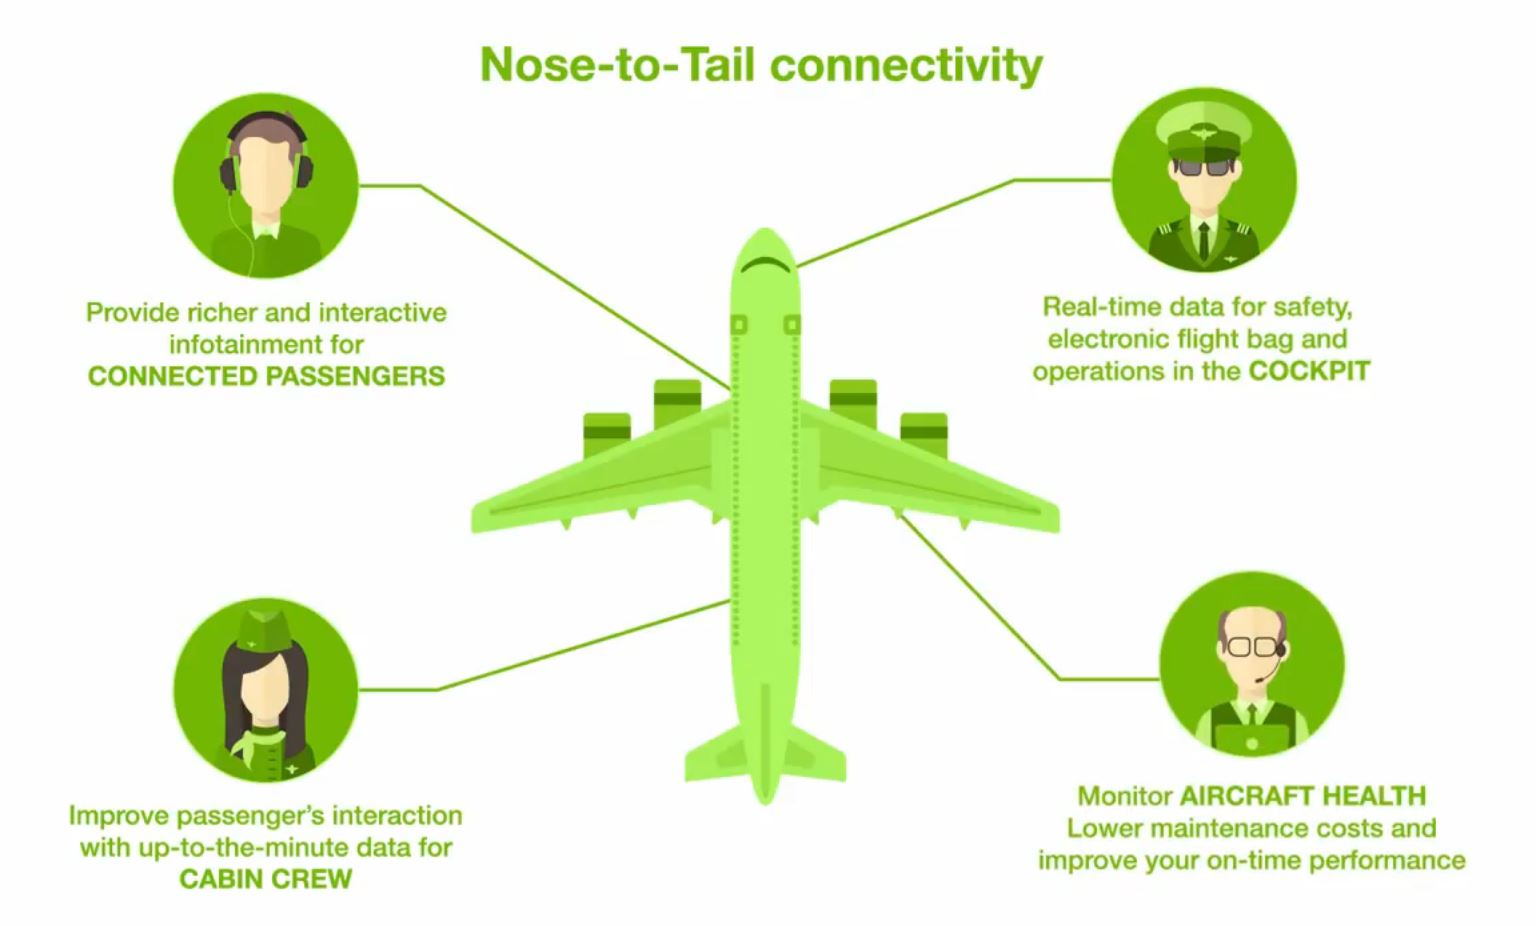 e-Aircraft, SITA OnAir's nose-to-tail solutions